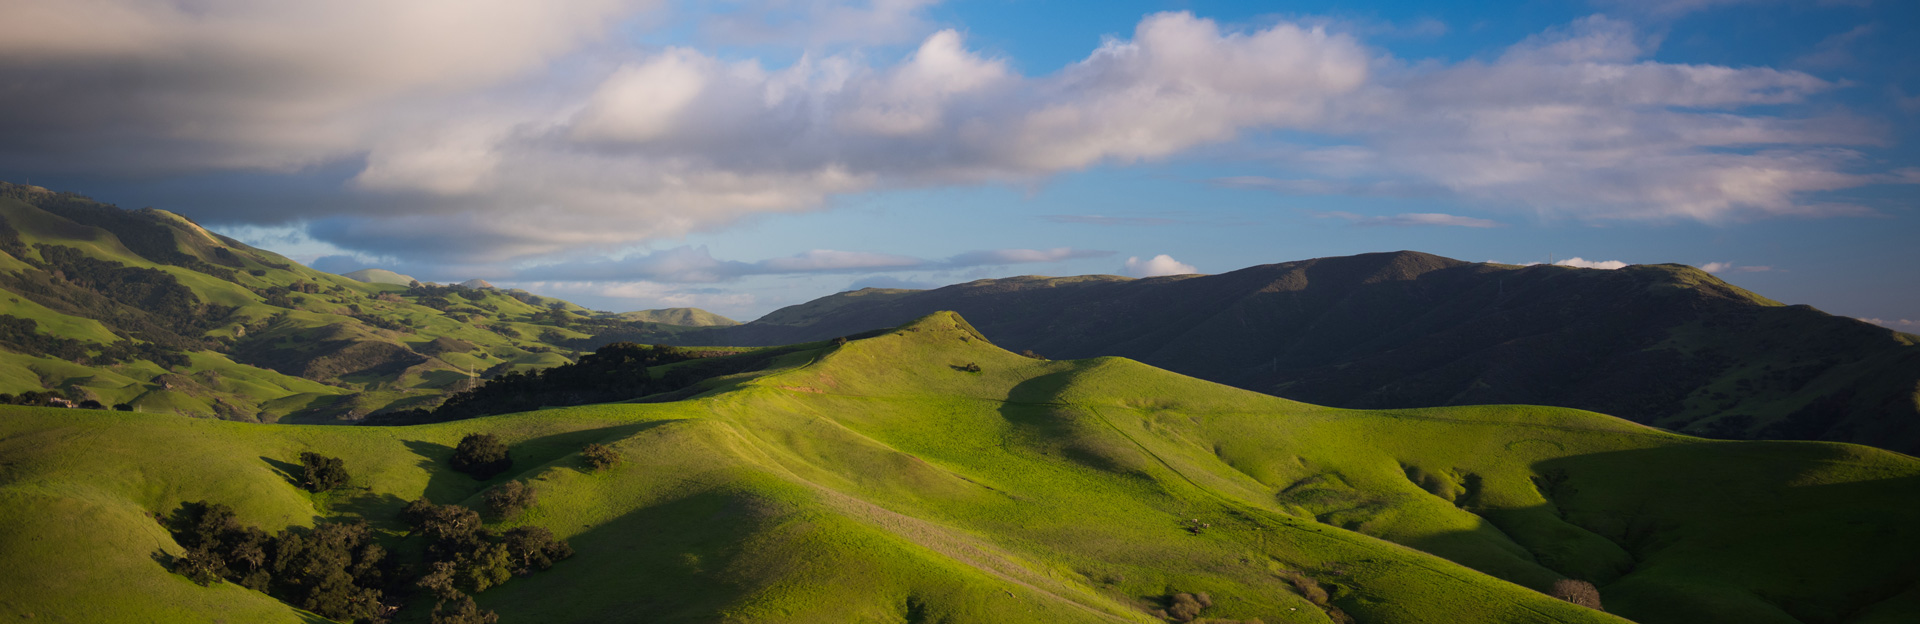 Cal Poly hills